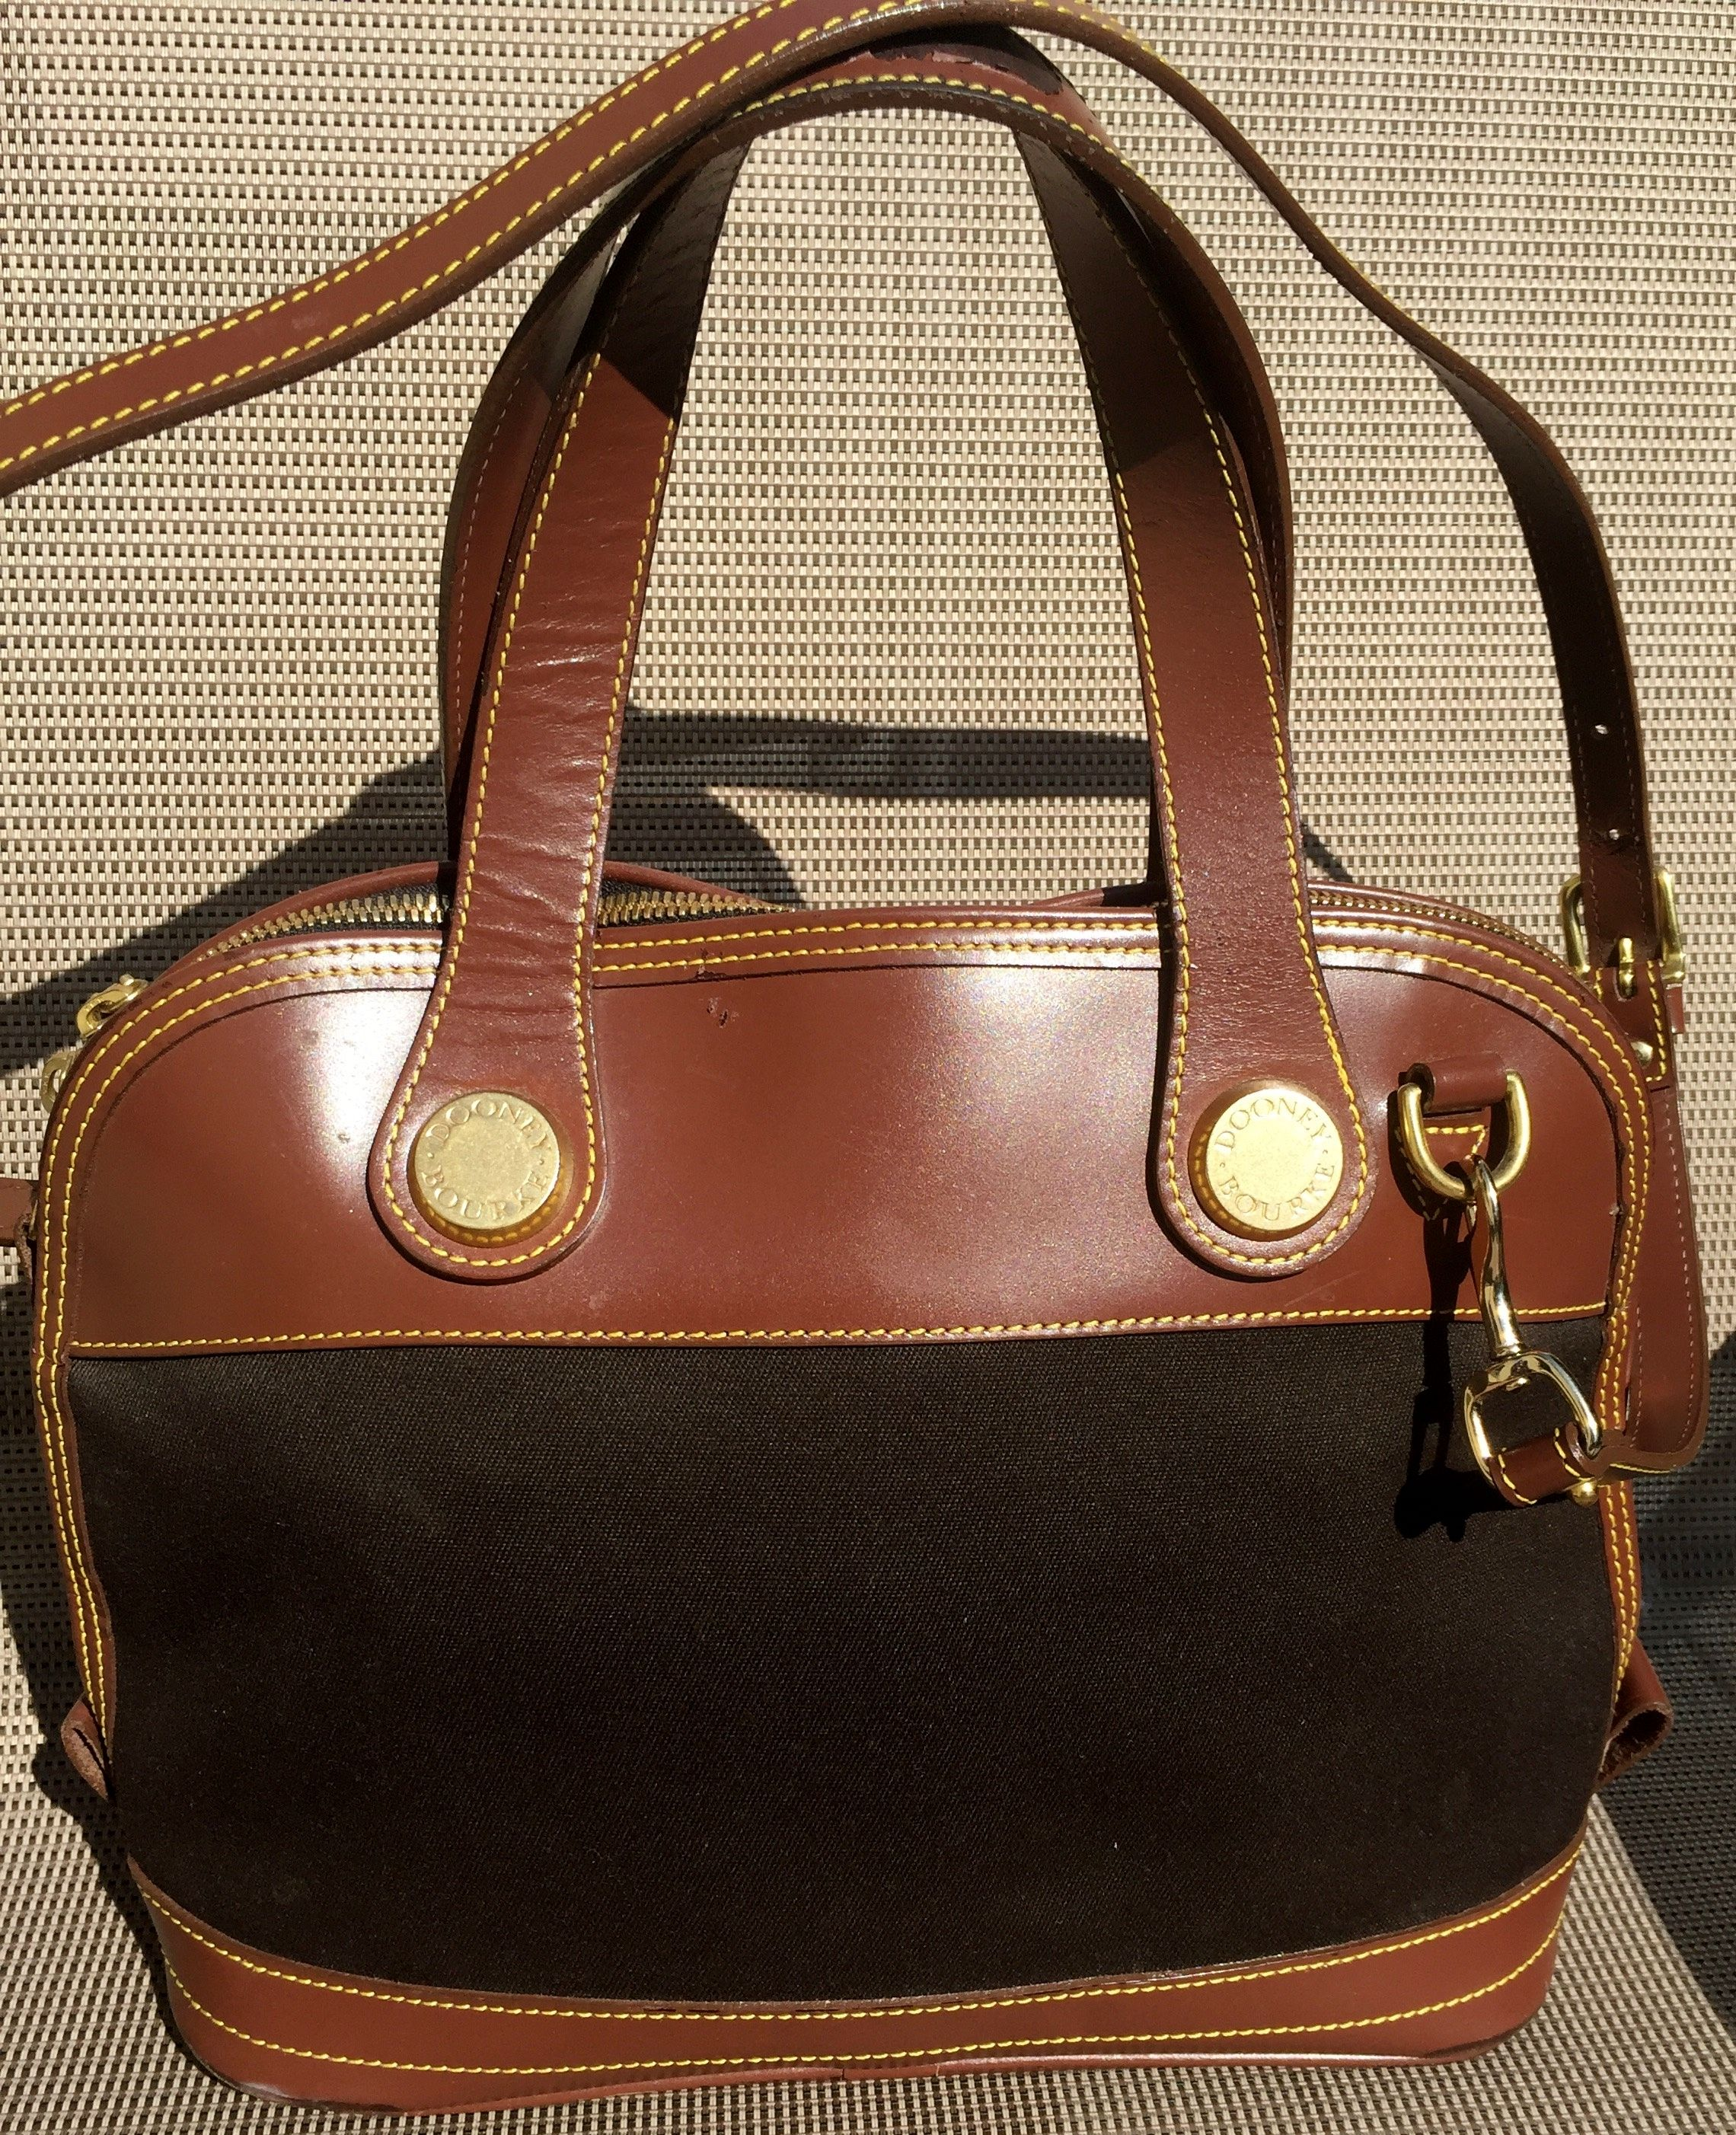 Vintage Dooney Bourke Handbag Brown Leather Canvas Purse Crossbody Made In Usa